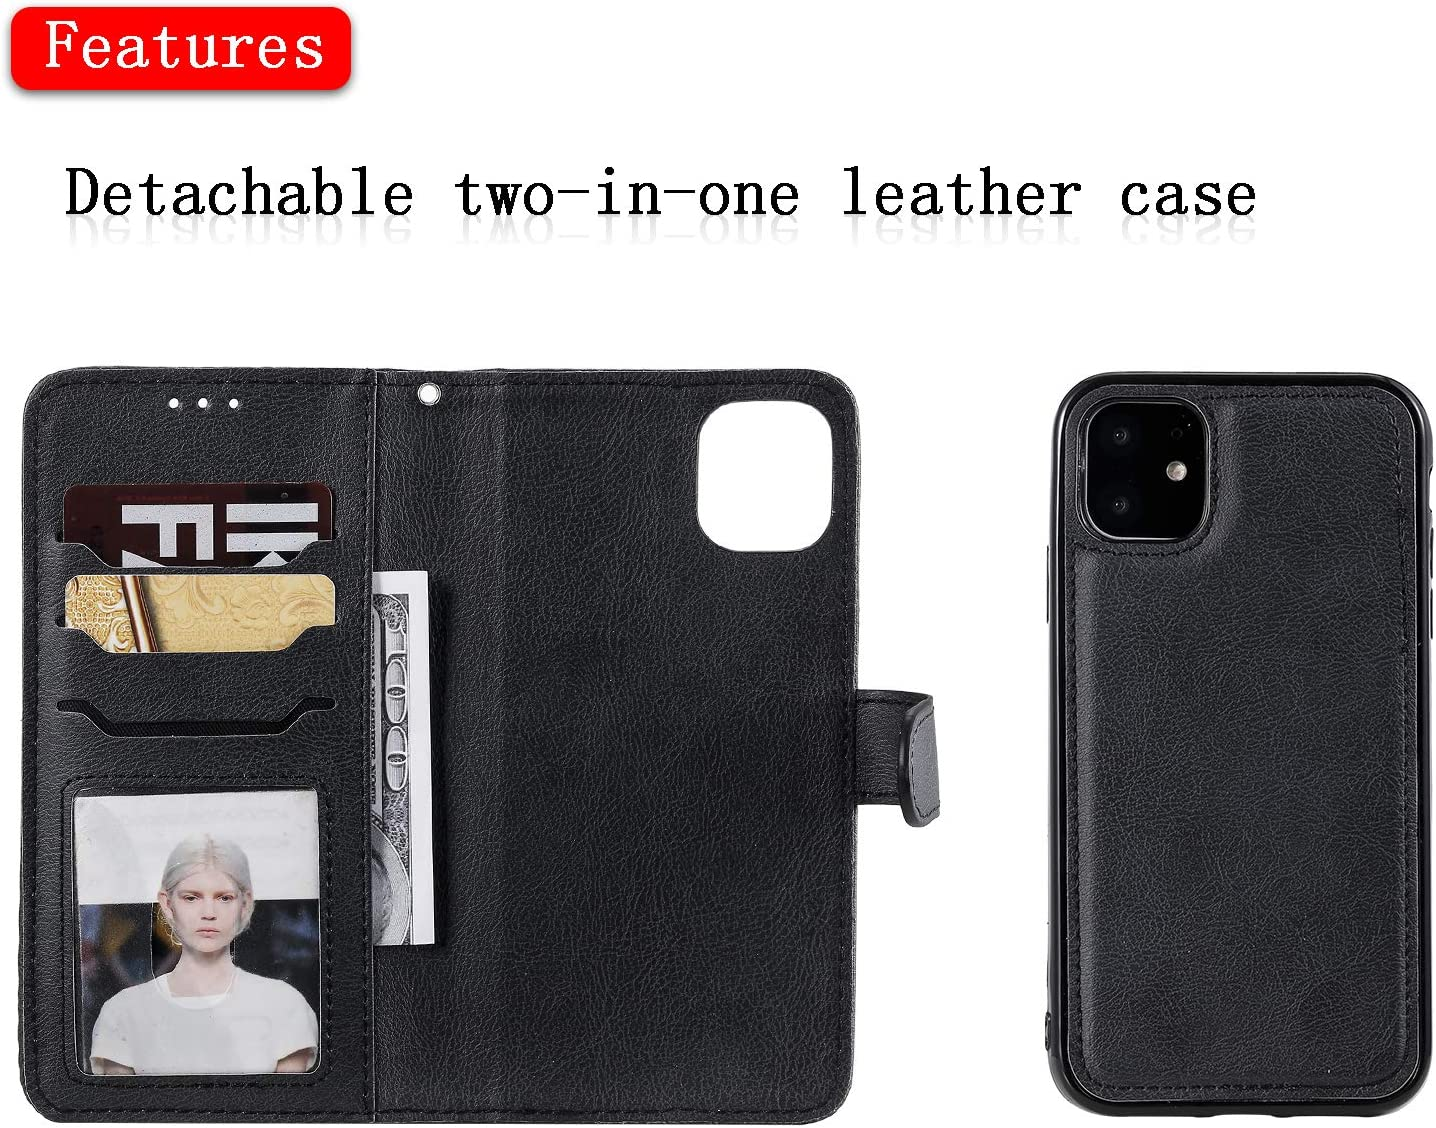 Lomogo Funda Cartera iPhone 11 Funda de Cuero con Tapa Ranuras Tarjetas Soporte Plegable Antigolpes Carcasa Case para Apple iPhone 11 2019 LOKTU110155 Azul